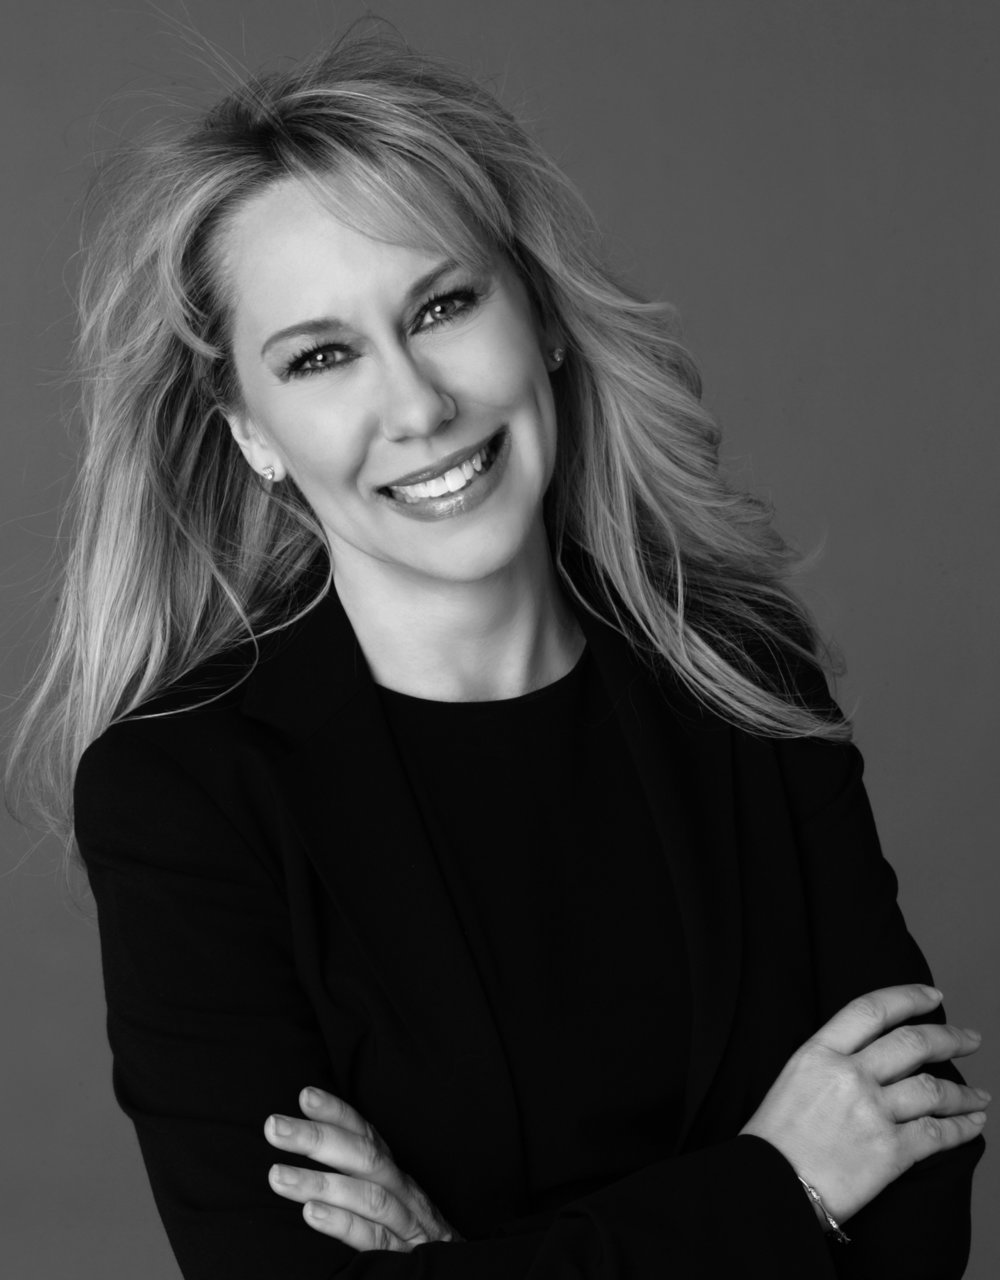 -Strategy+Style Marketing Group Founding Partner and Chief Strategist Karen Fluharty